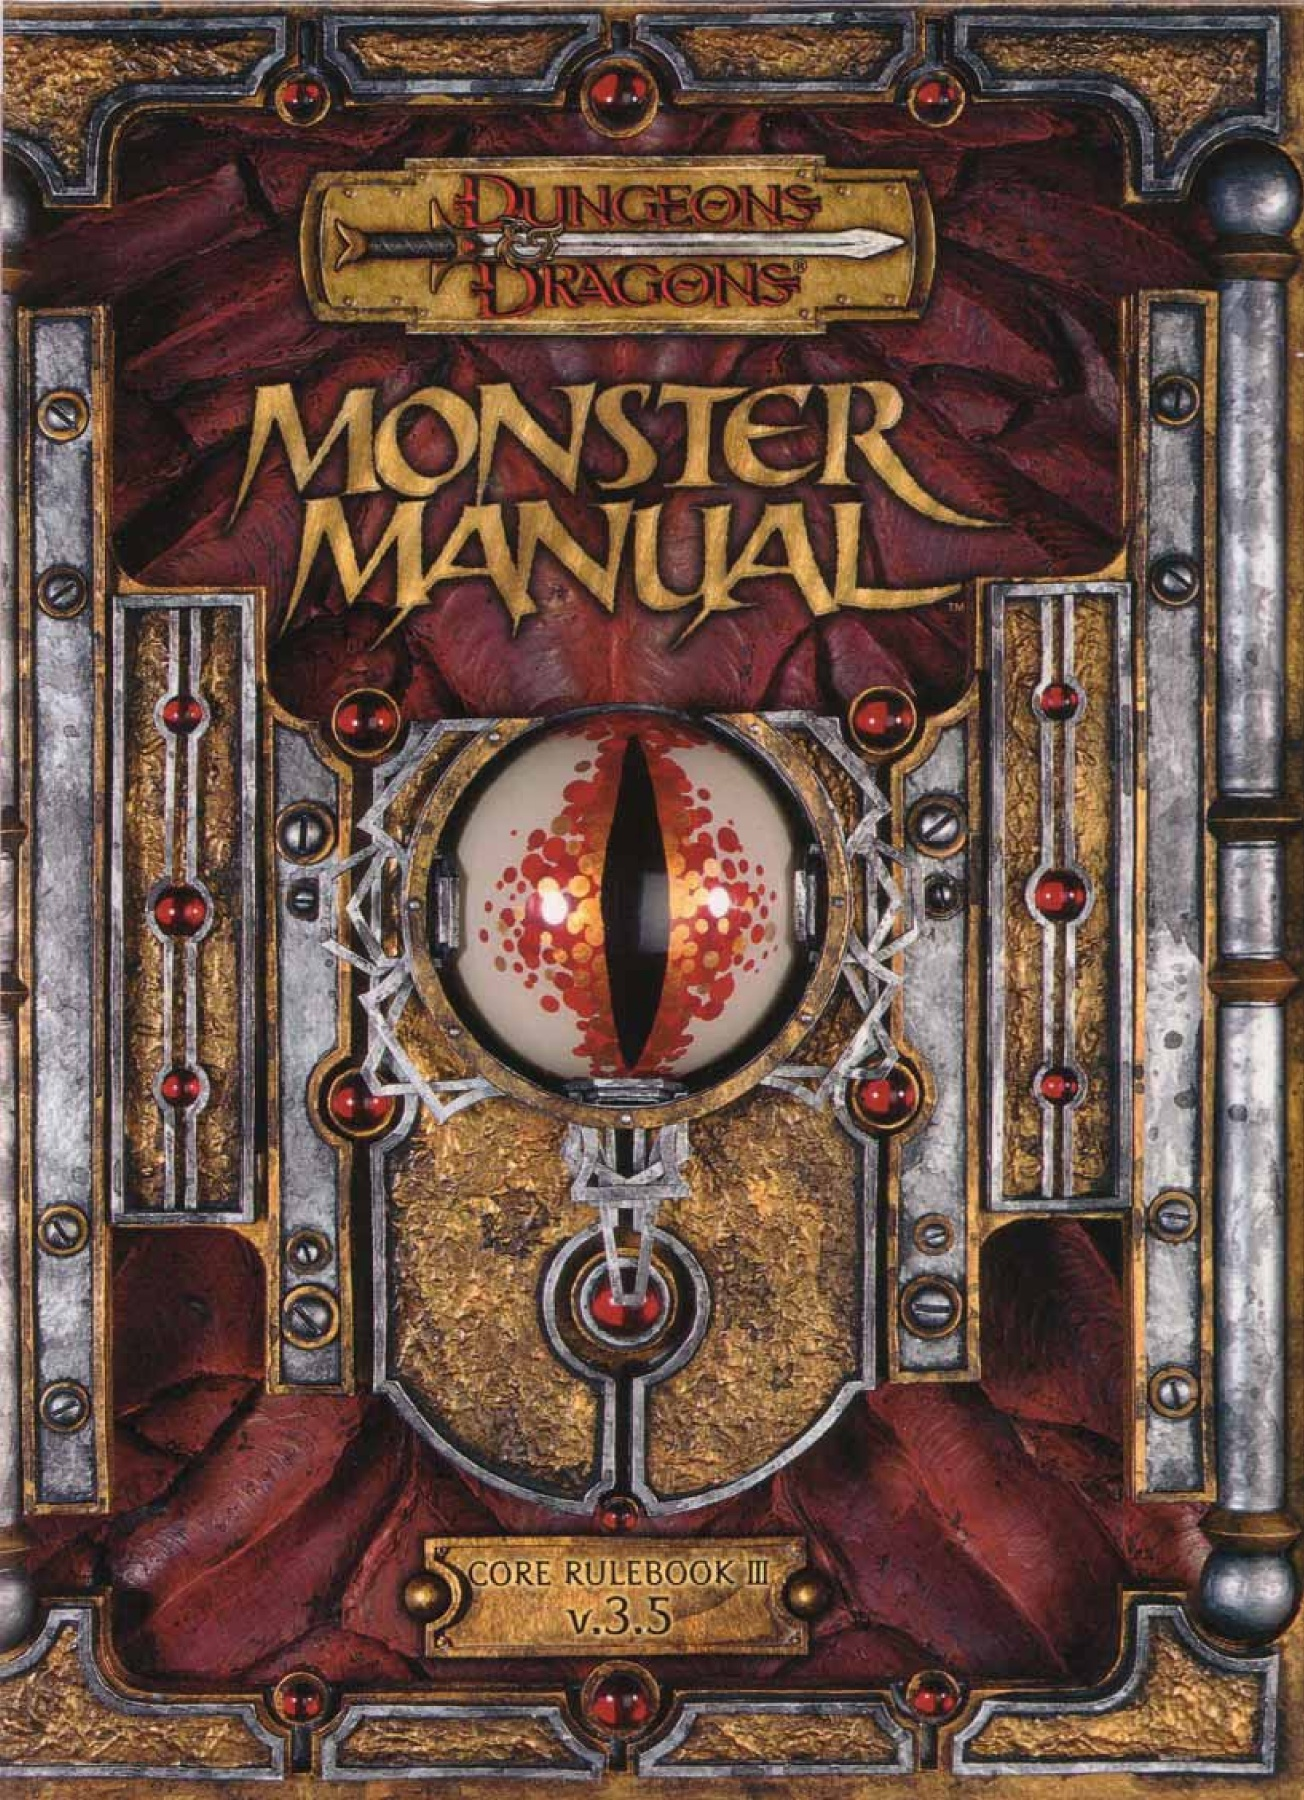 Monster manual (dungeons & dragons 3rd edition) by skip williams.